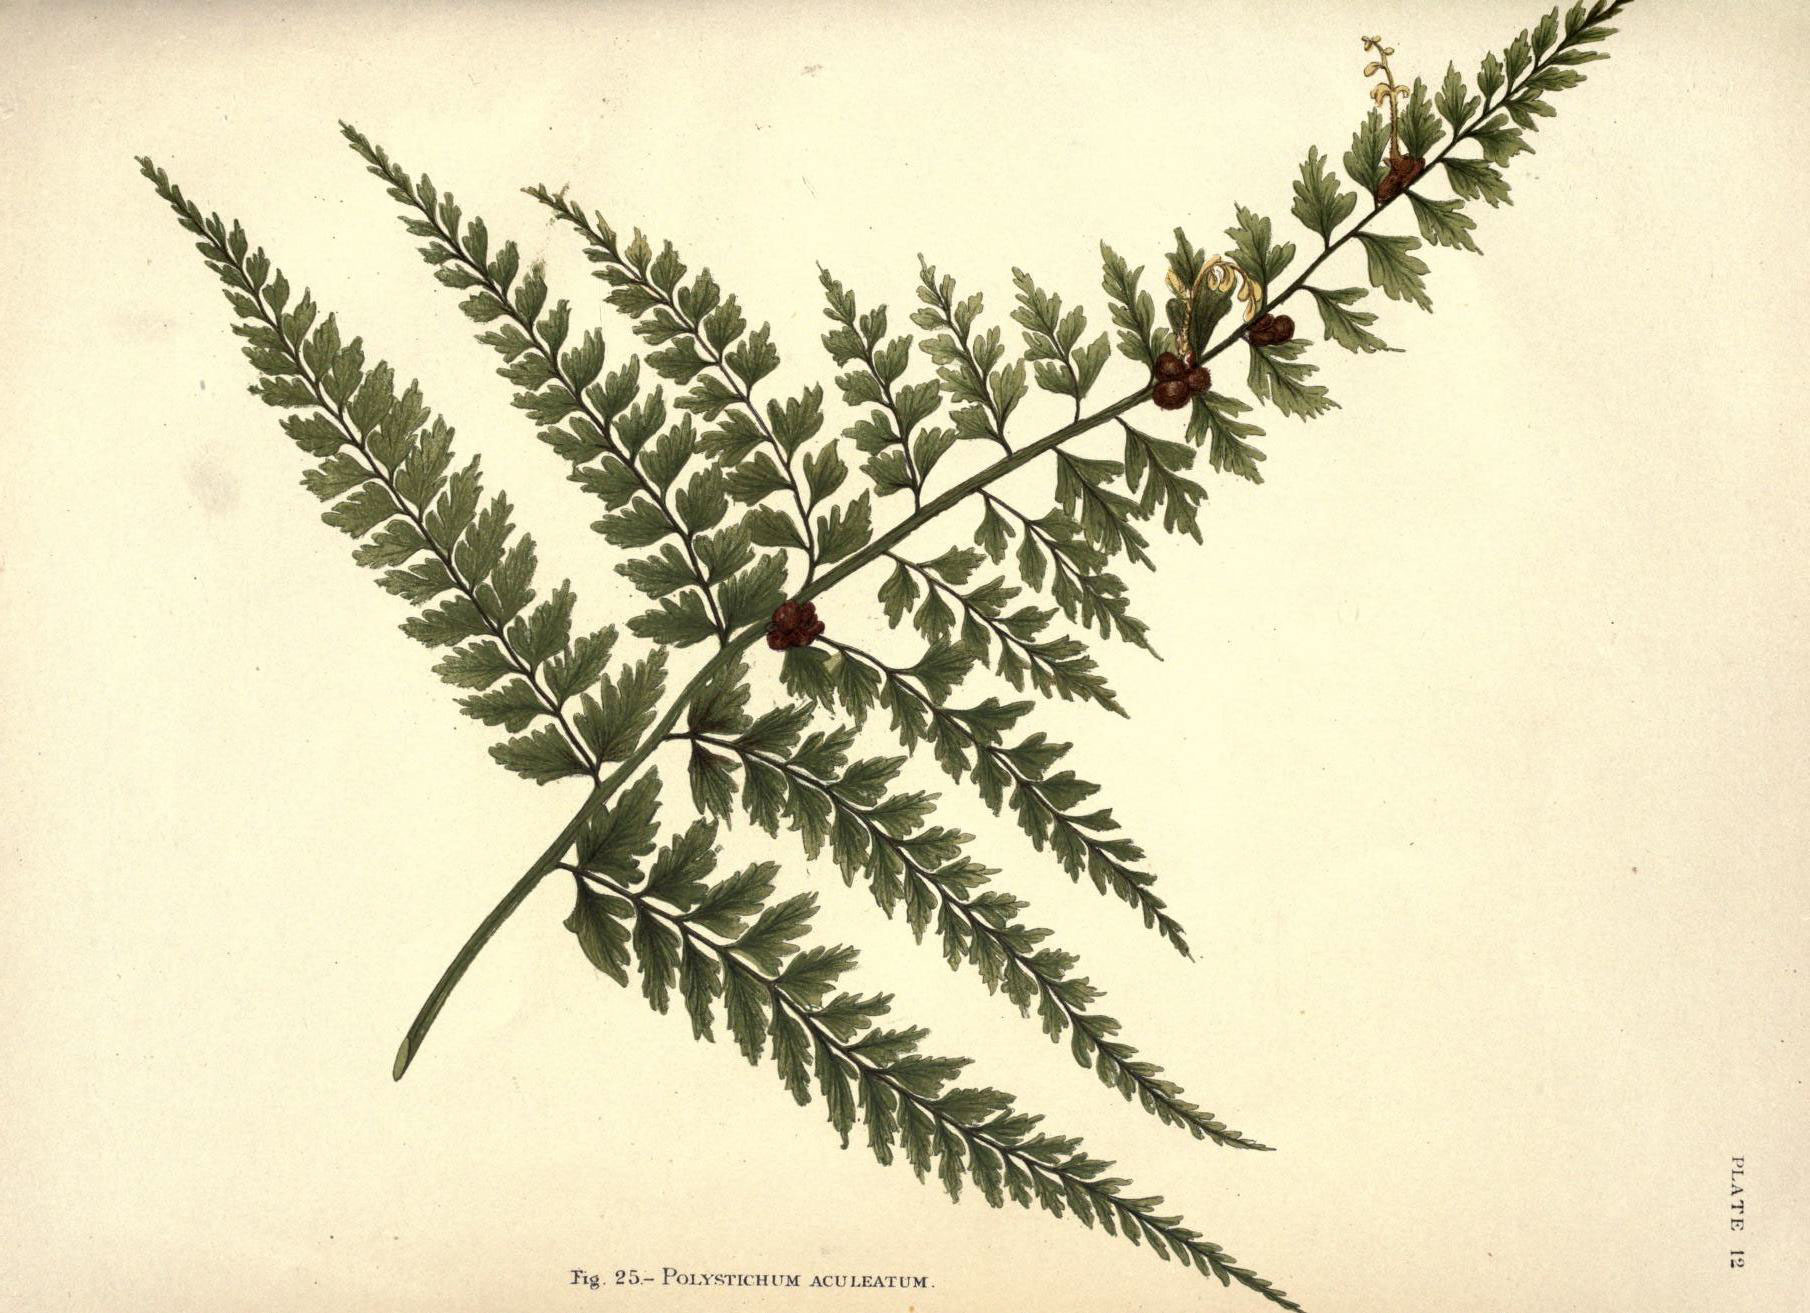 Image of hard shield-fern